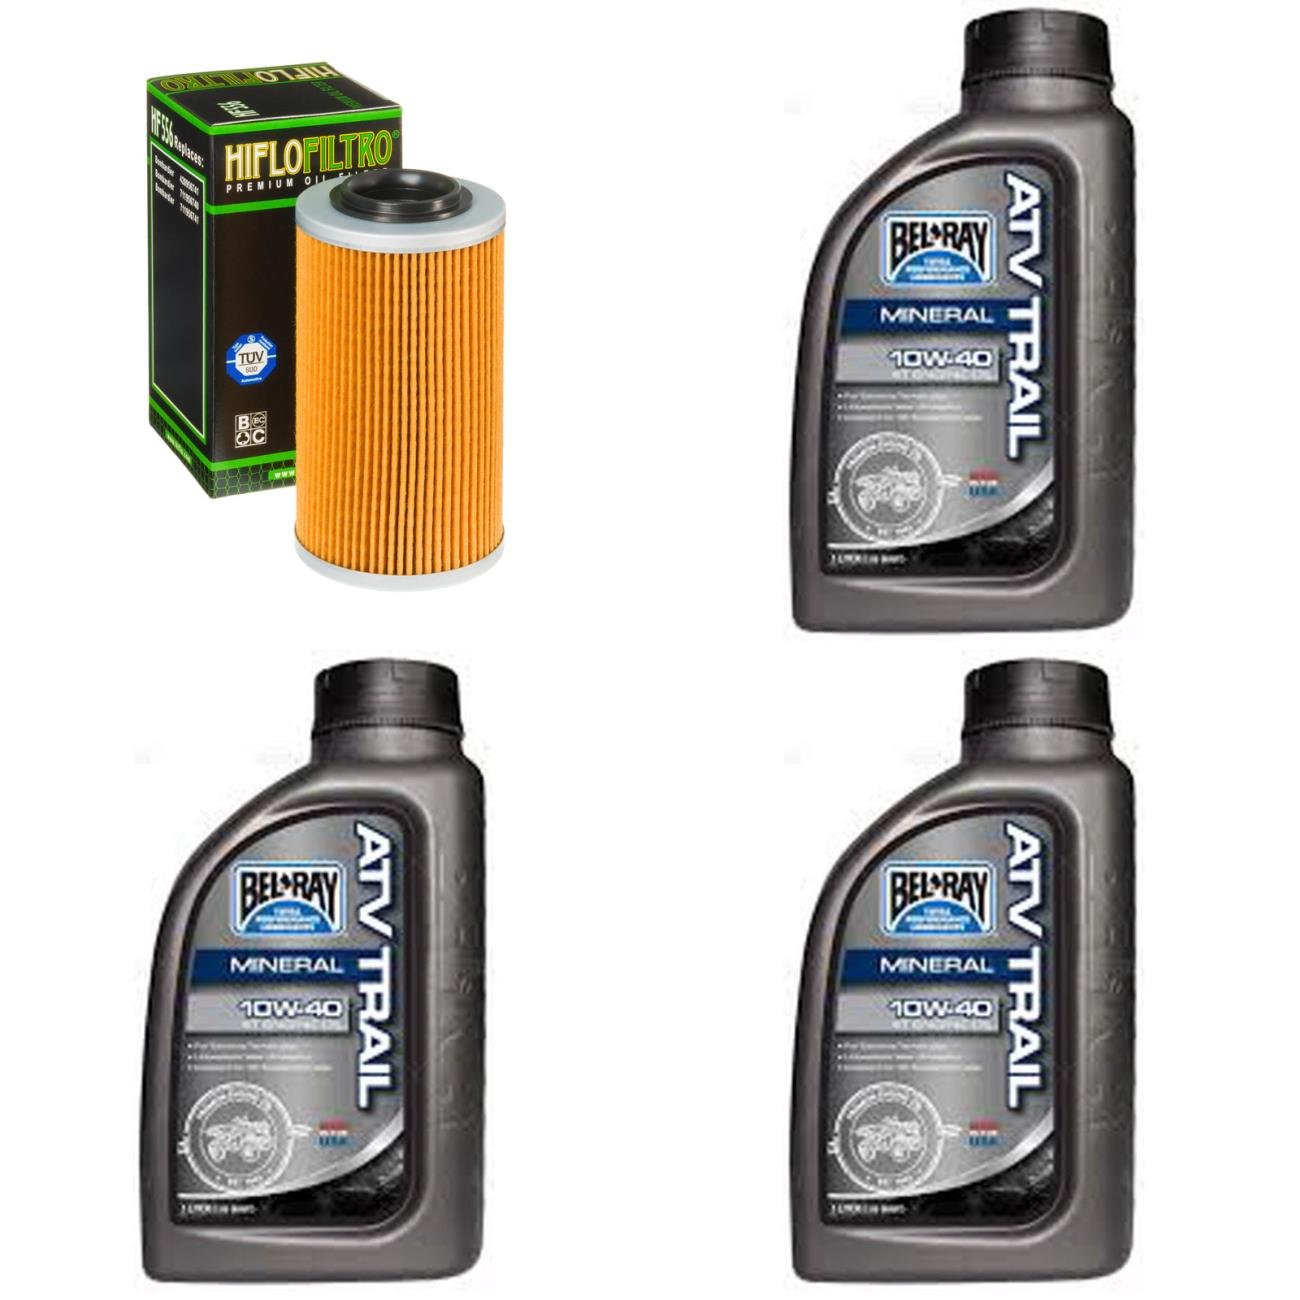 Complete Mineral Engine Oil 10W-40 Change Kit for ATV BOMBARDIER 650 Quest XT 02-03